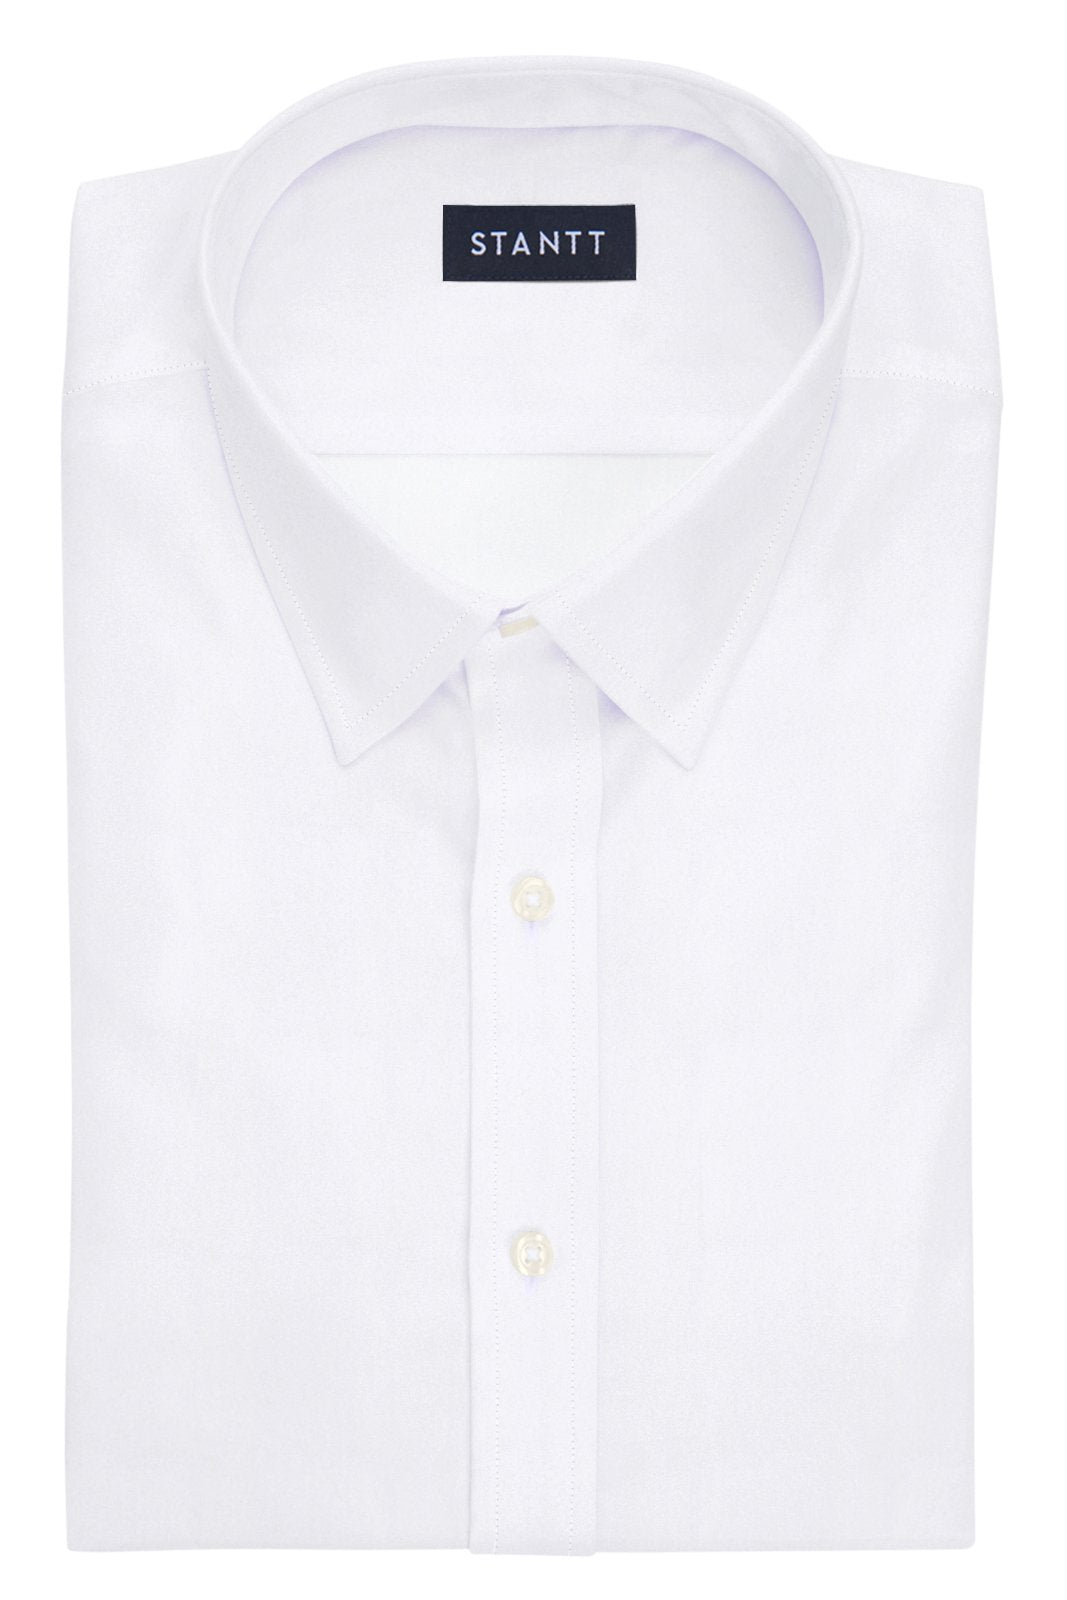 White Twill: Semi-Spread Collar, Barrel Cuff